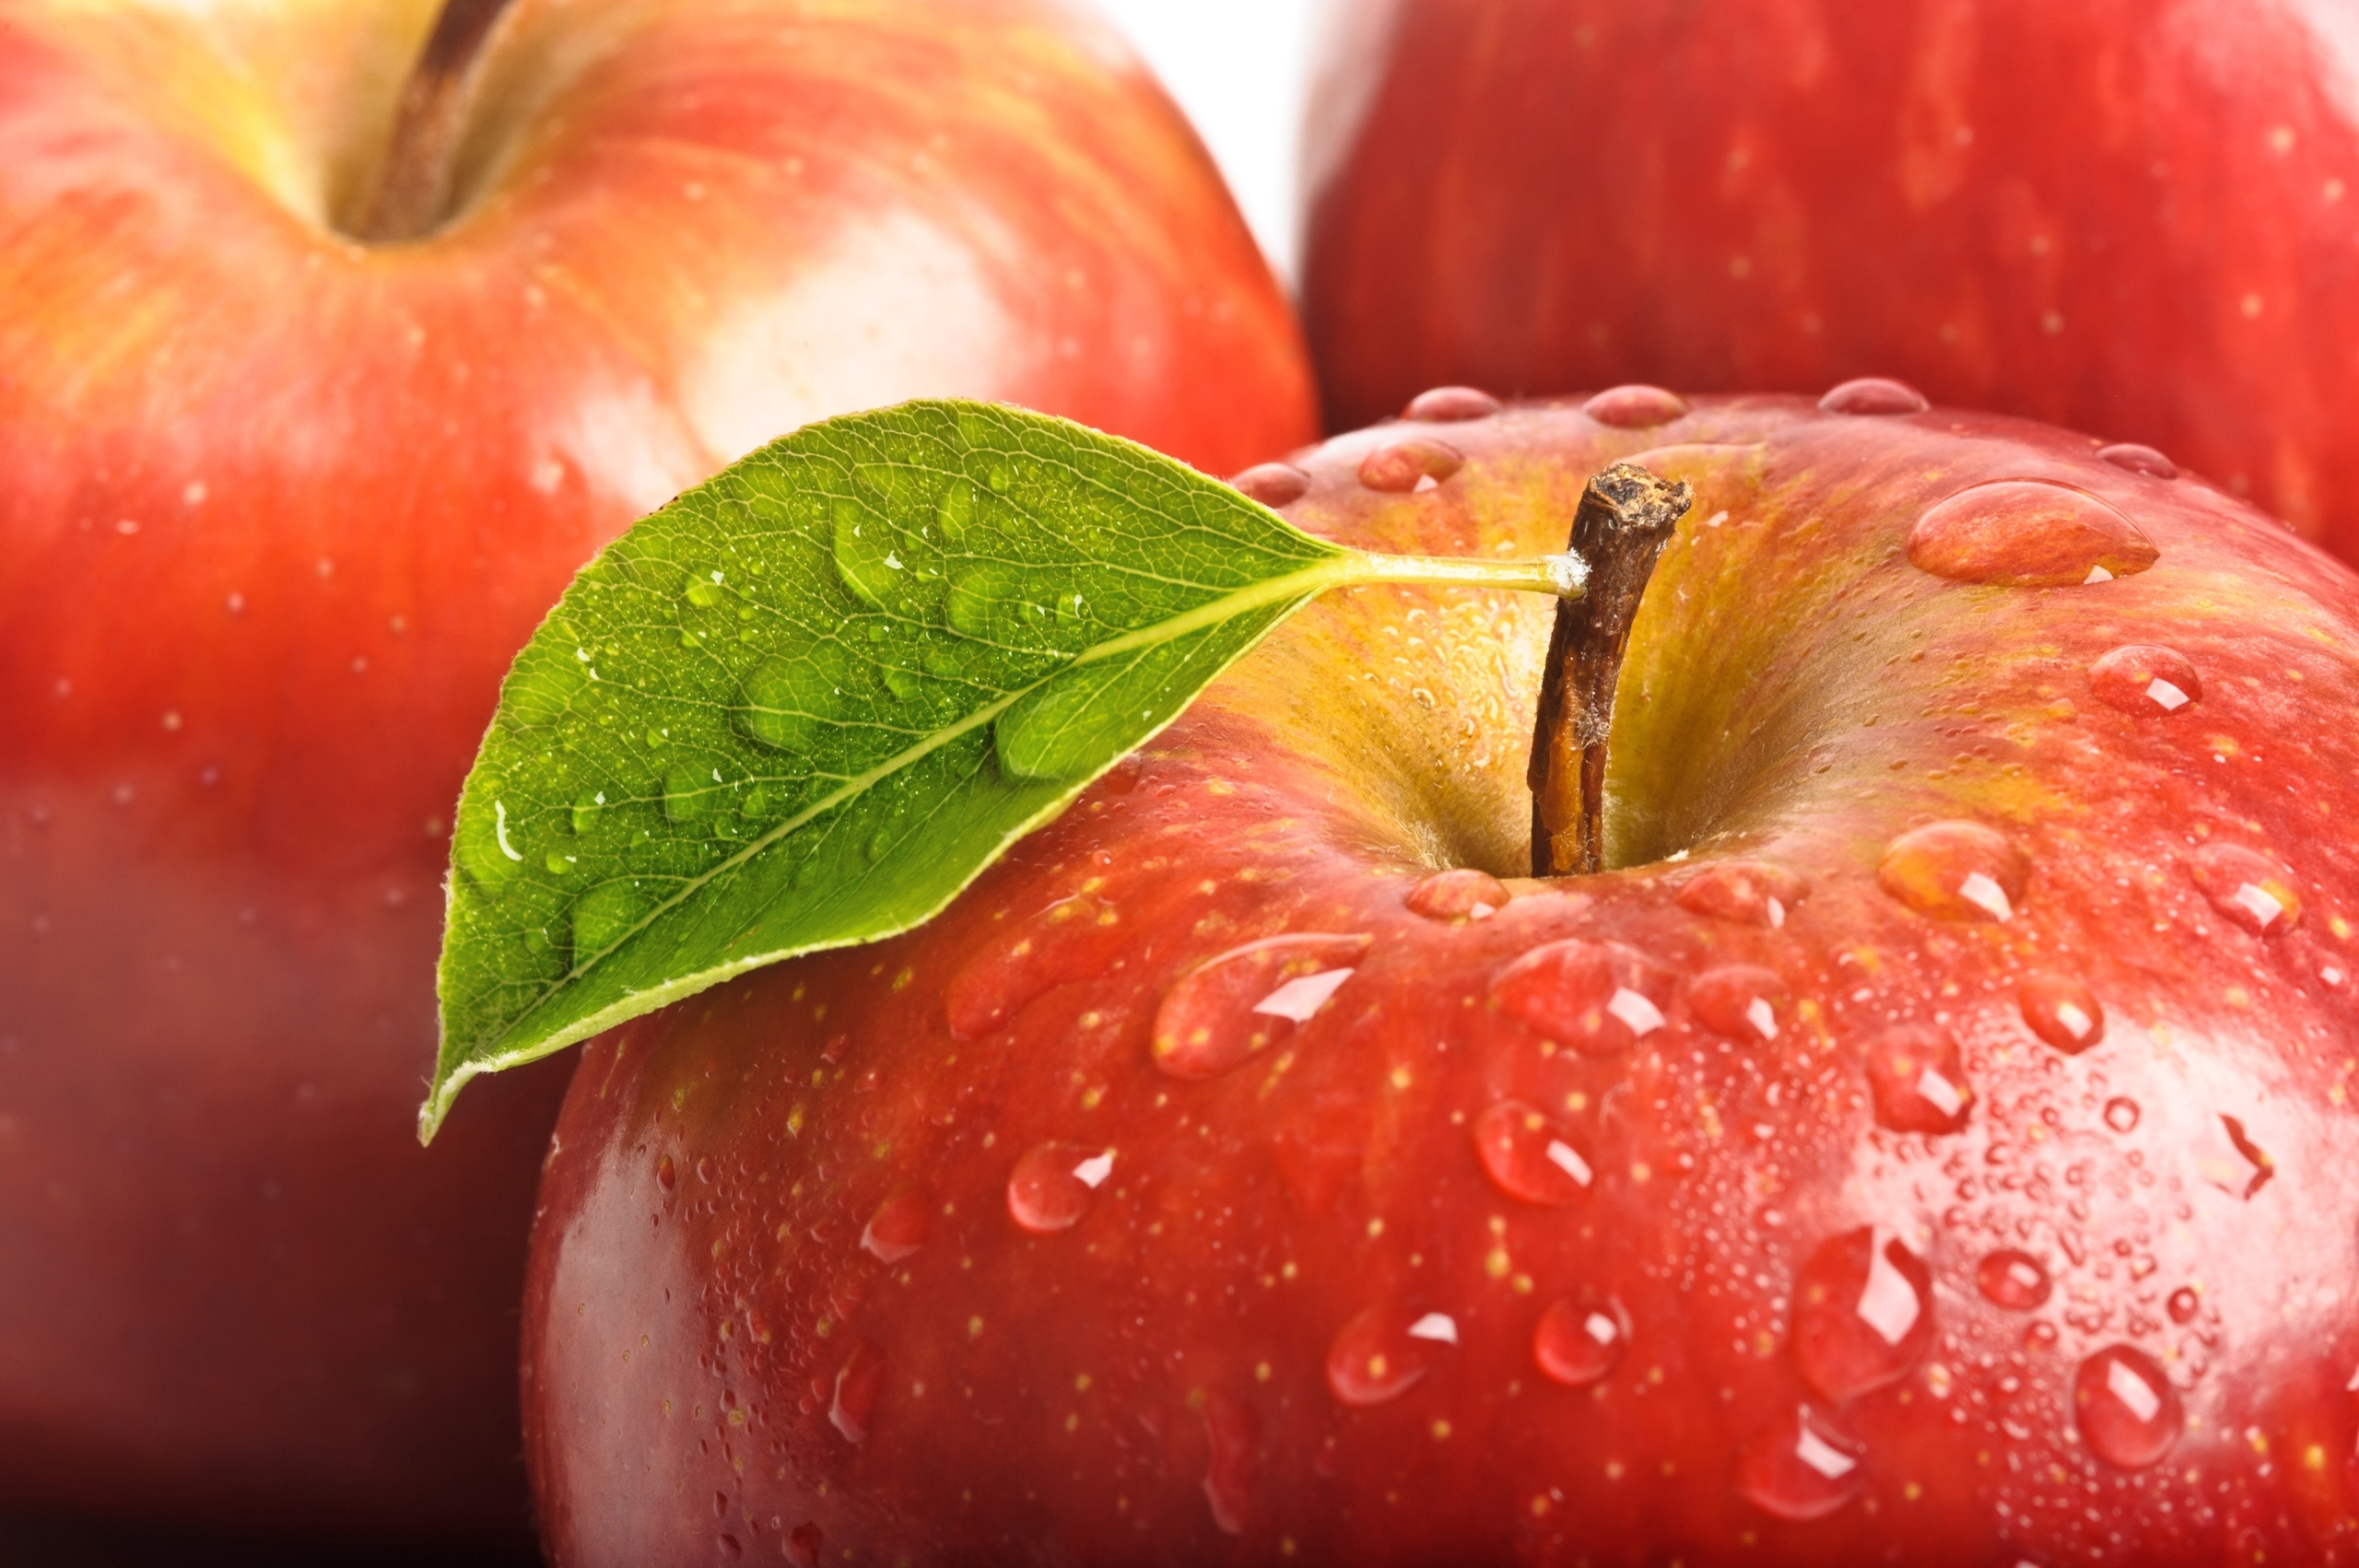 22319 download wallpaper Fruits, Food, Apples, Drops screensavers and pictures for free